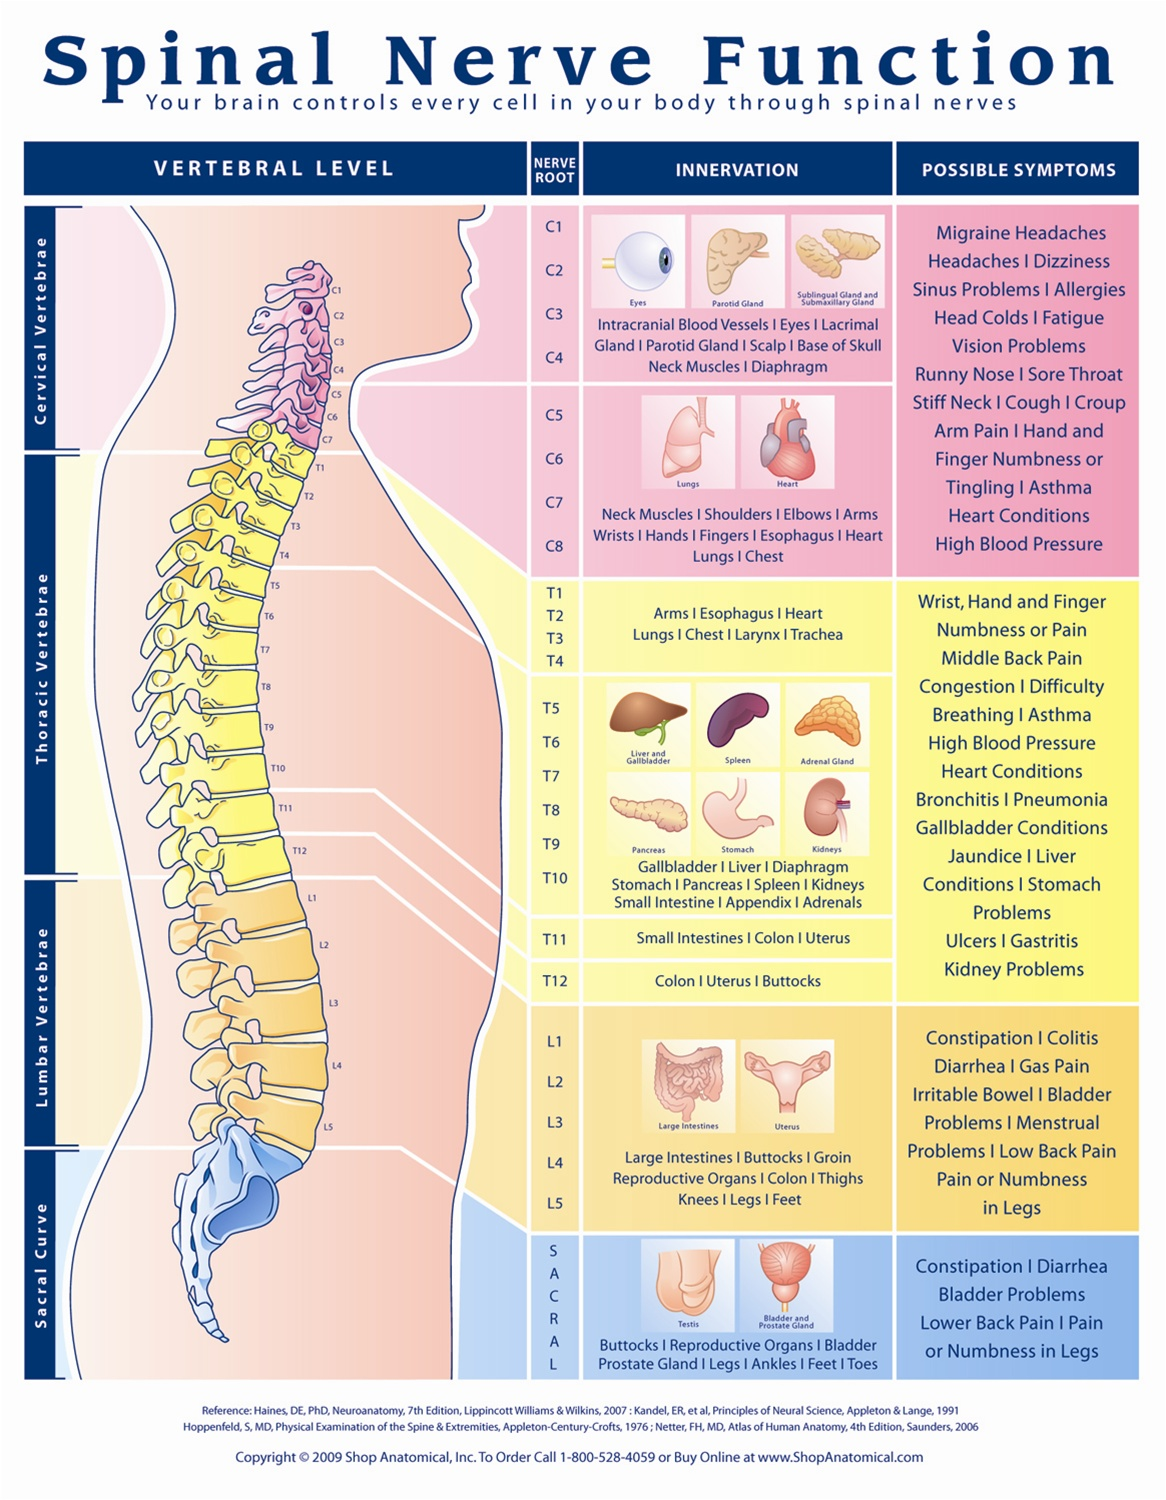 Spinal nerve function anatomical chart anatomy models and